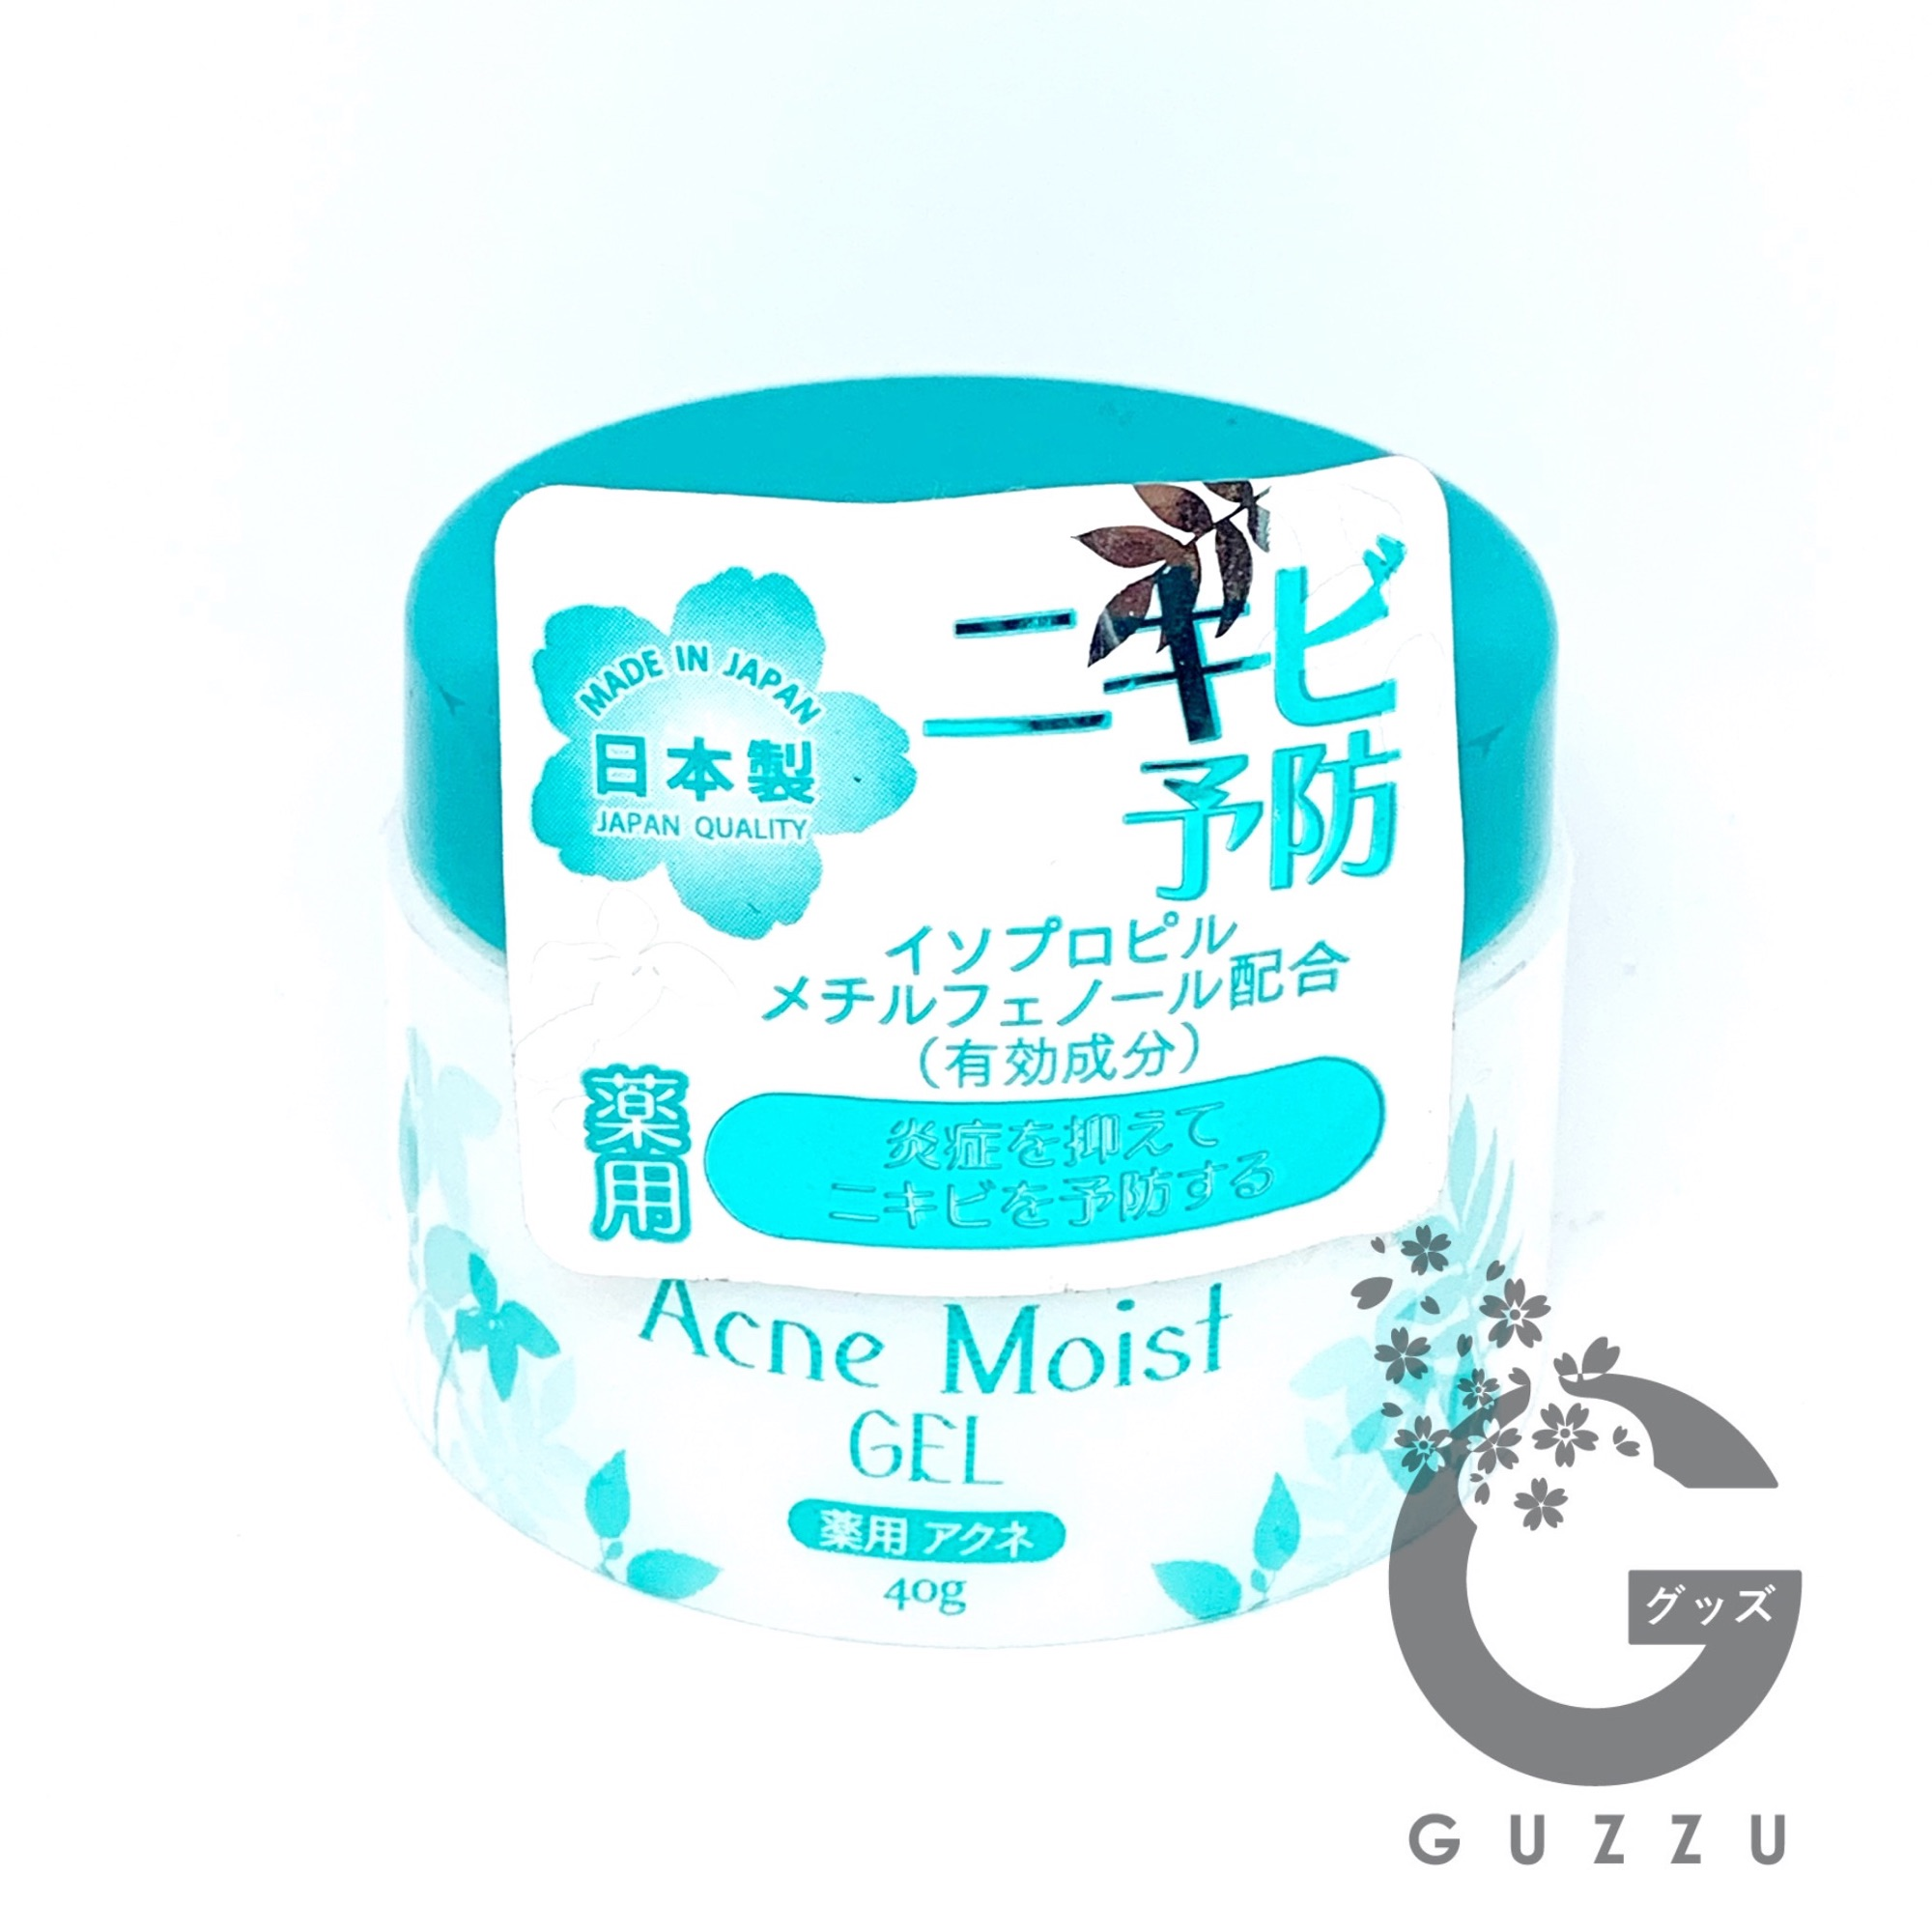 Acne Moist Gel Buy Sell Online Facial Moisturizers With Cheap